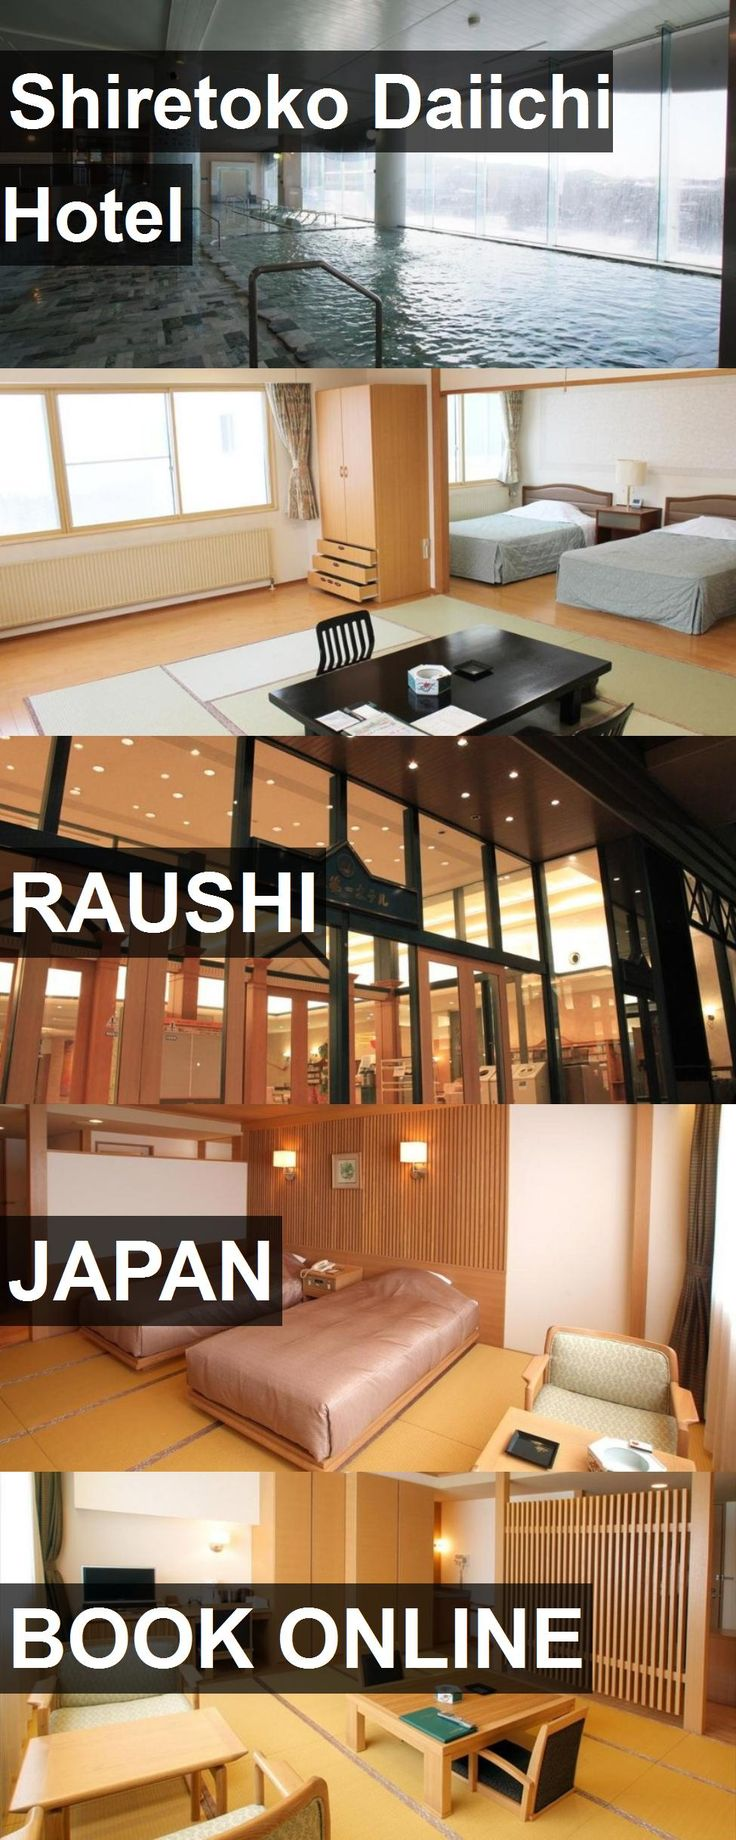 Shiretoko Daiichi Hotel in Raushi, Japan. For more information, photos, reviews and best prices please follow the link. #Japan #Raushi #travel #vacation #hotel